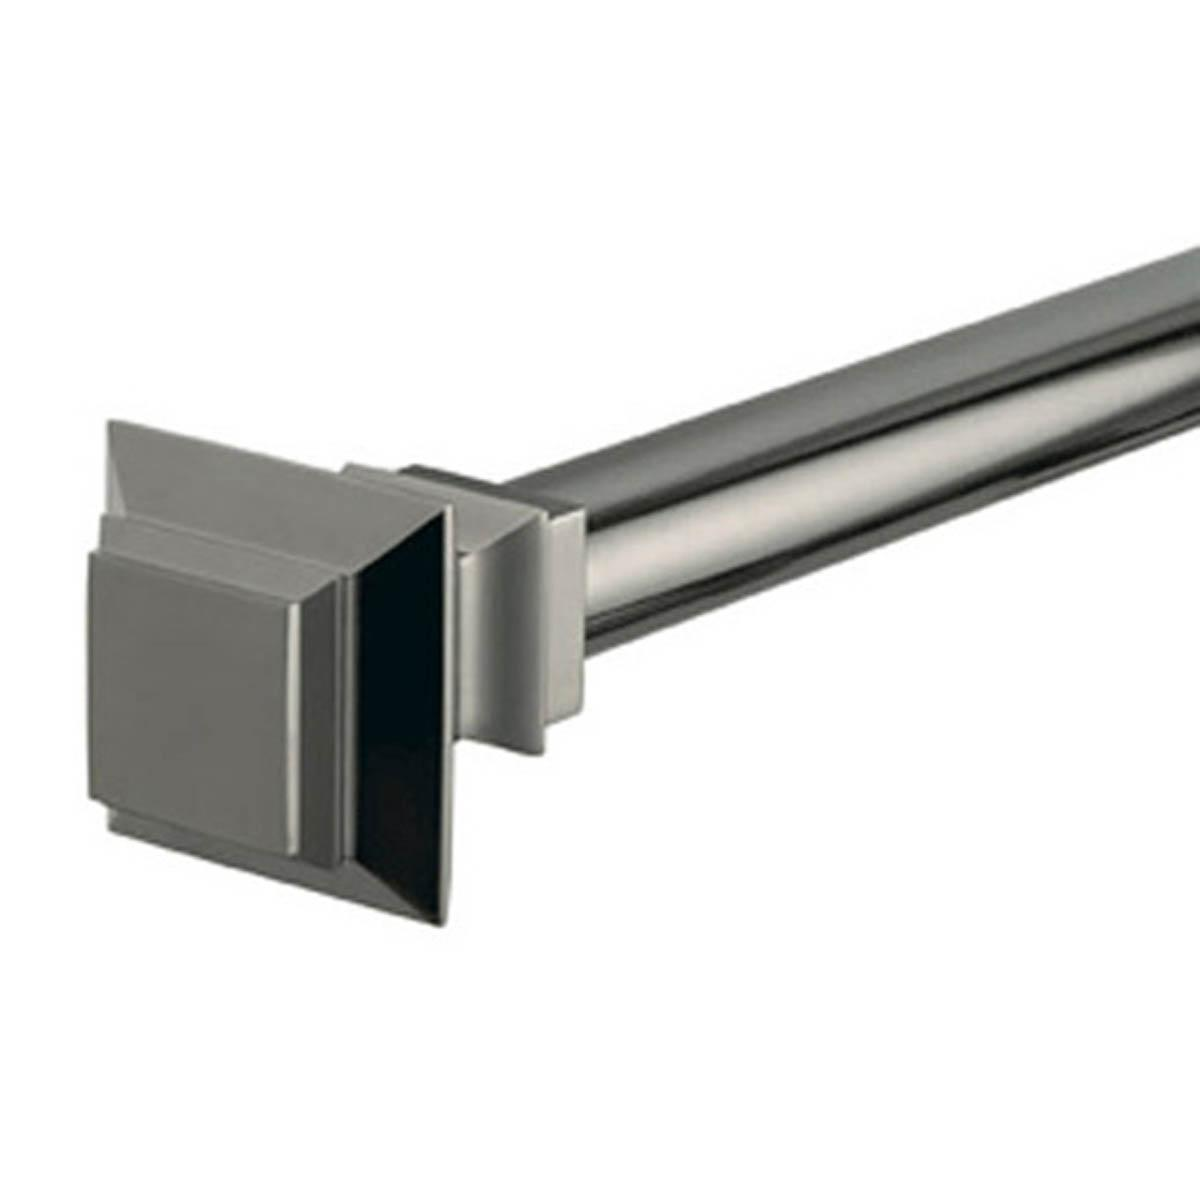 Graphite Squared Curtain Pole